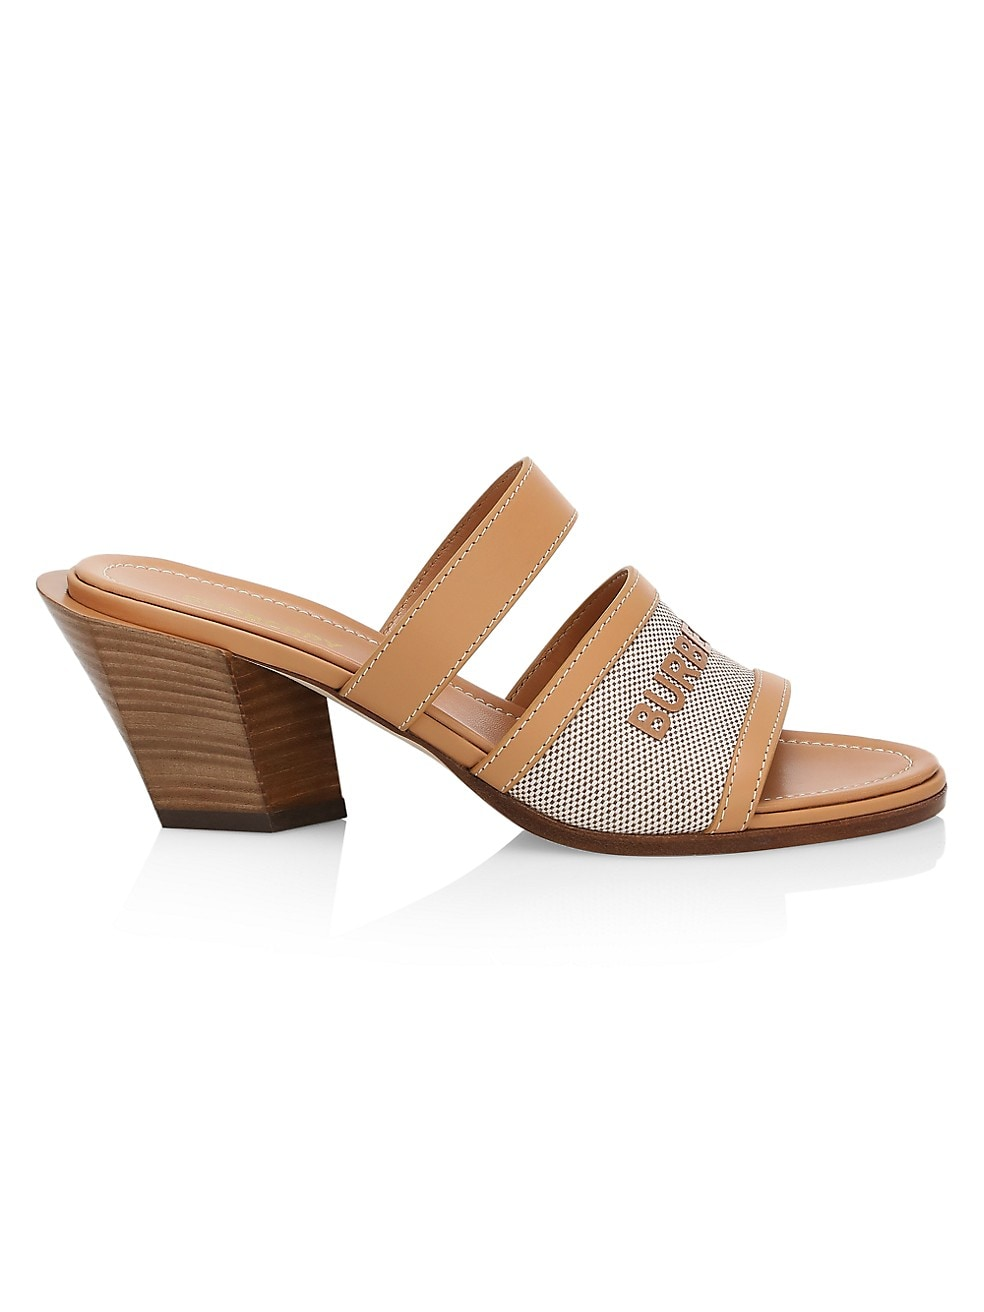 Burberry Honour Leather Sandals